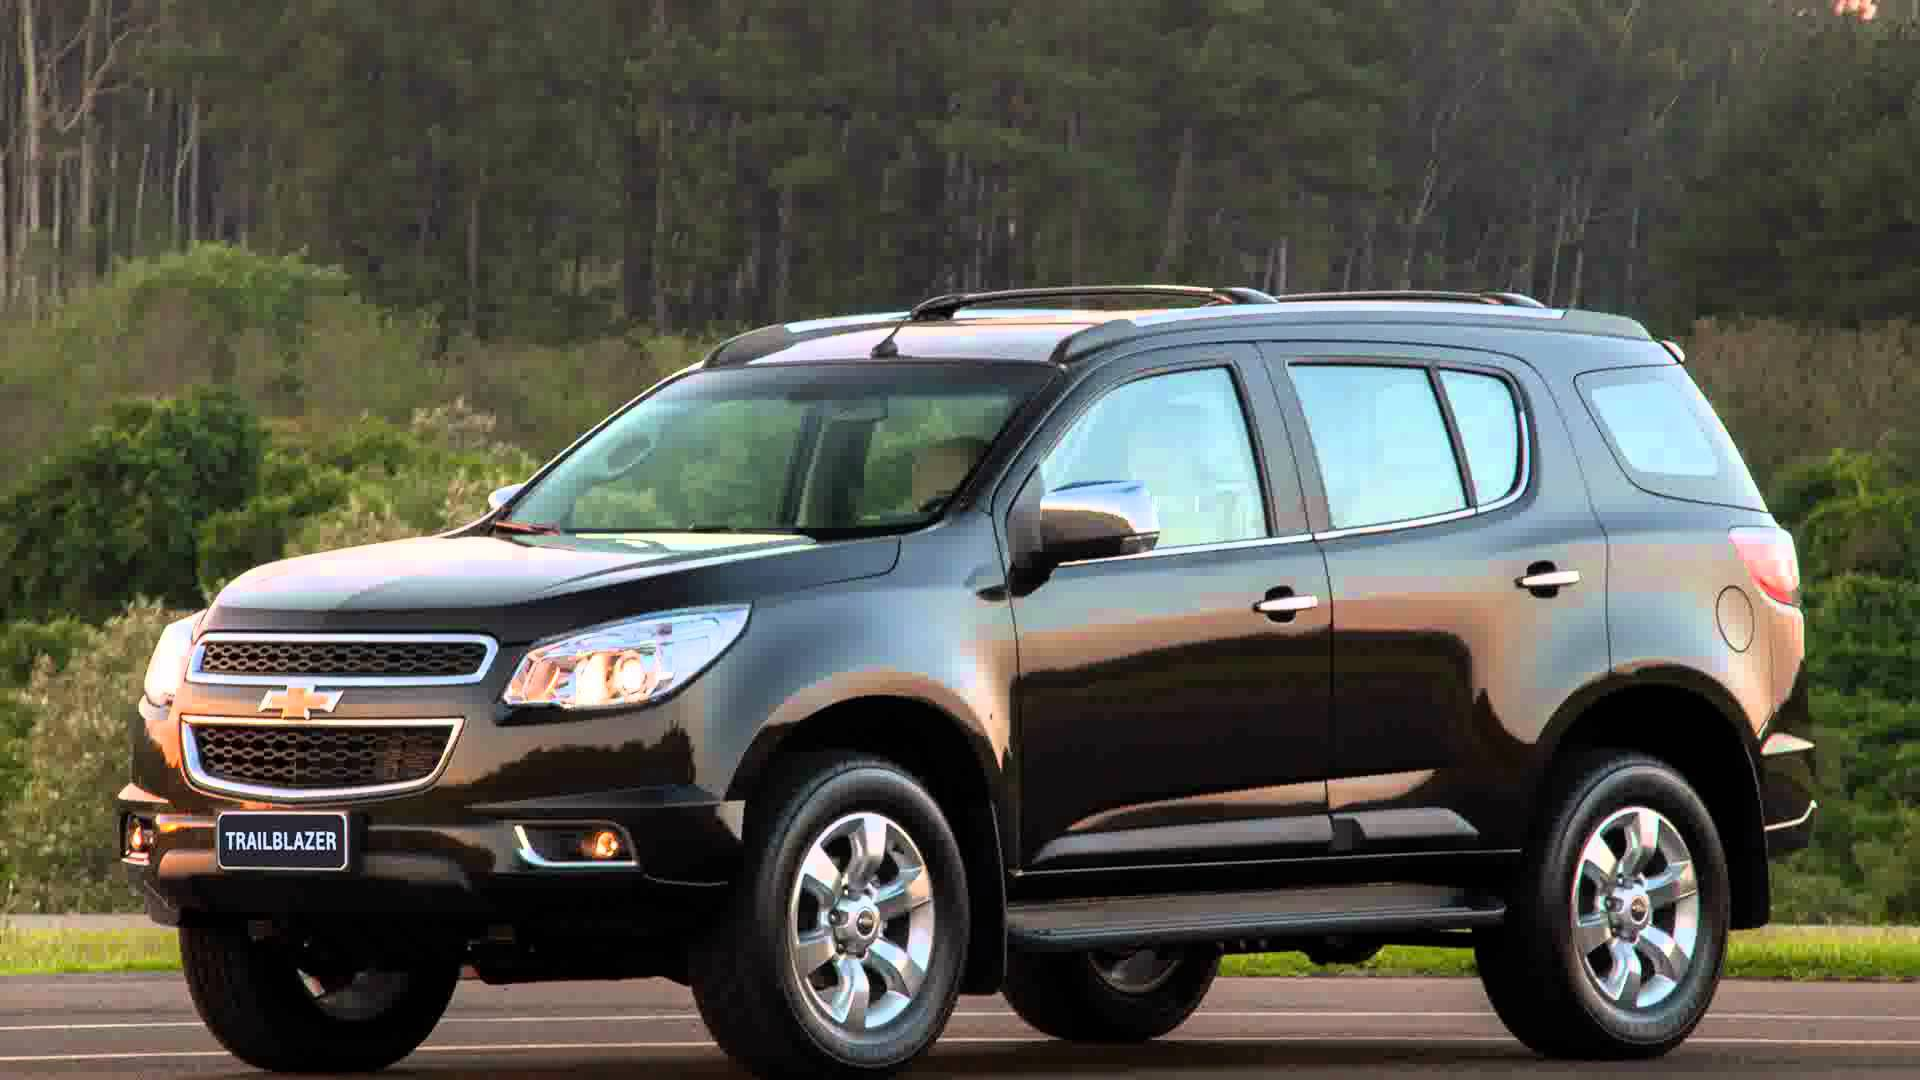 Comparison - Chevrolet Suburban SUV 2016 - vs - Chevrolet TrailBlazer 2015 | SUV Drive